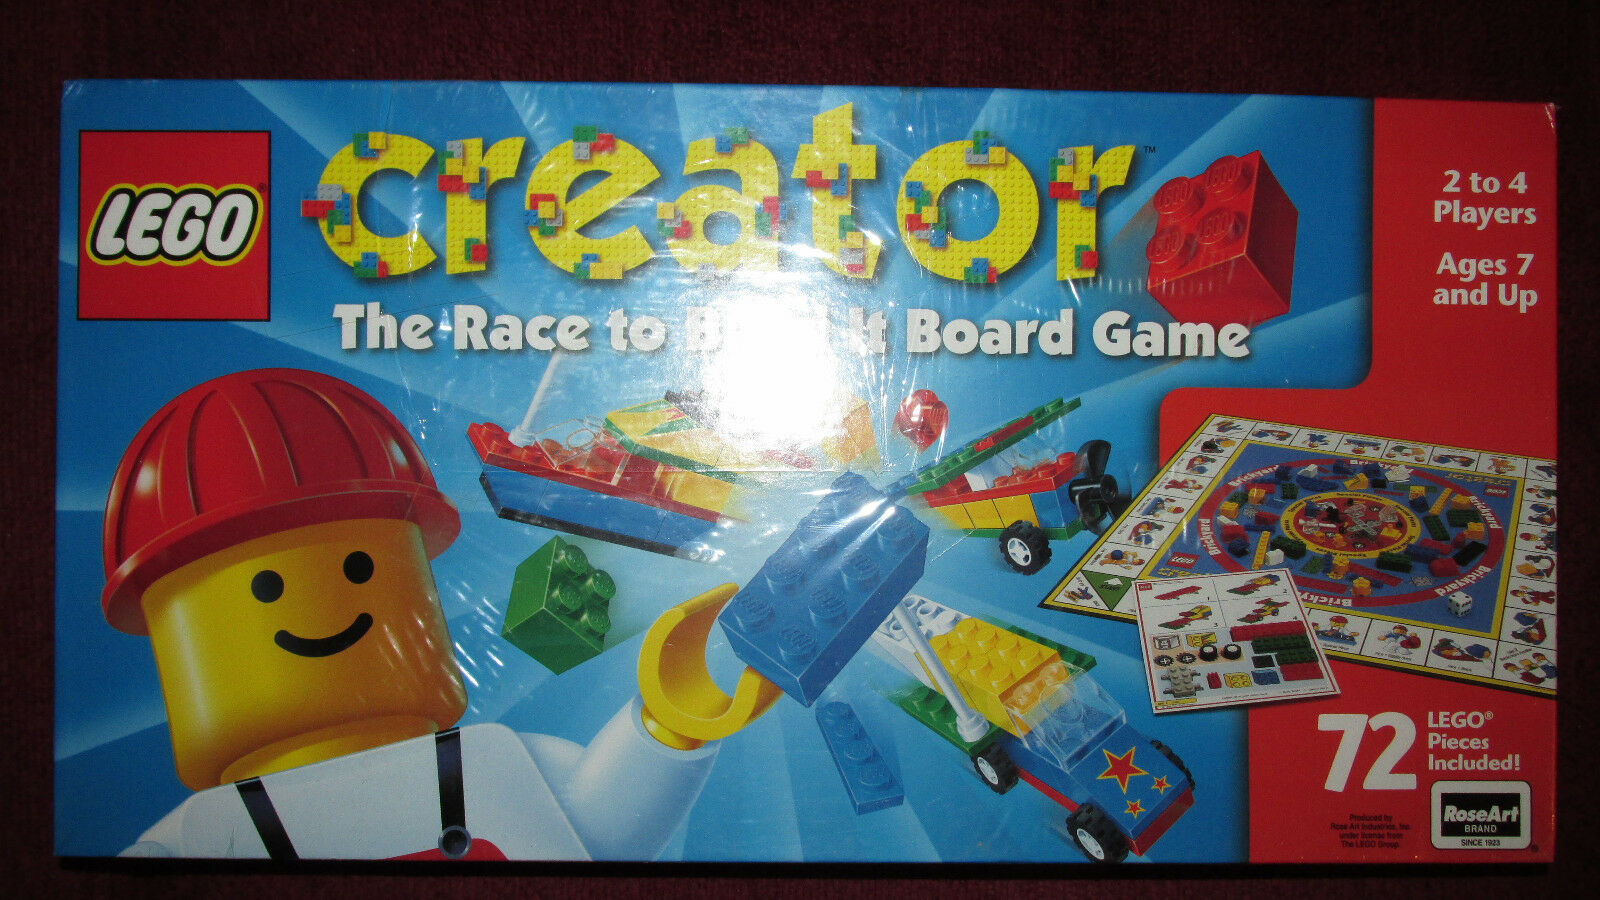 LEGO The Race to Build it jeu de plateau vintage rare Educational NEW FACTORY SEALED